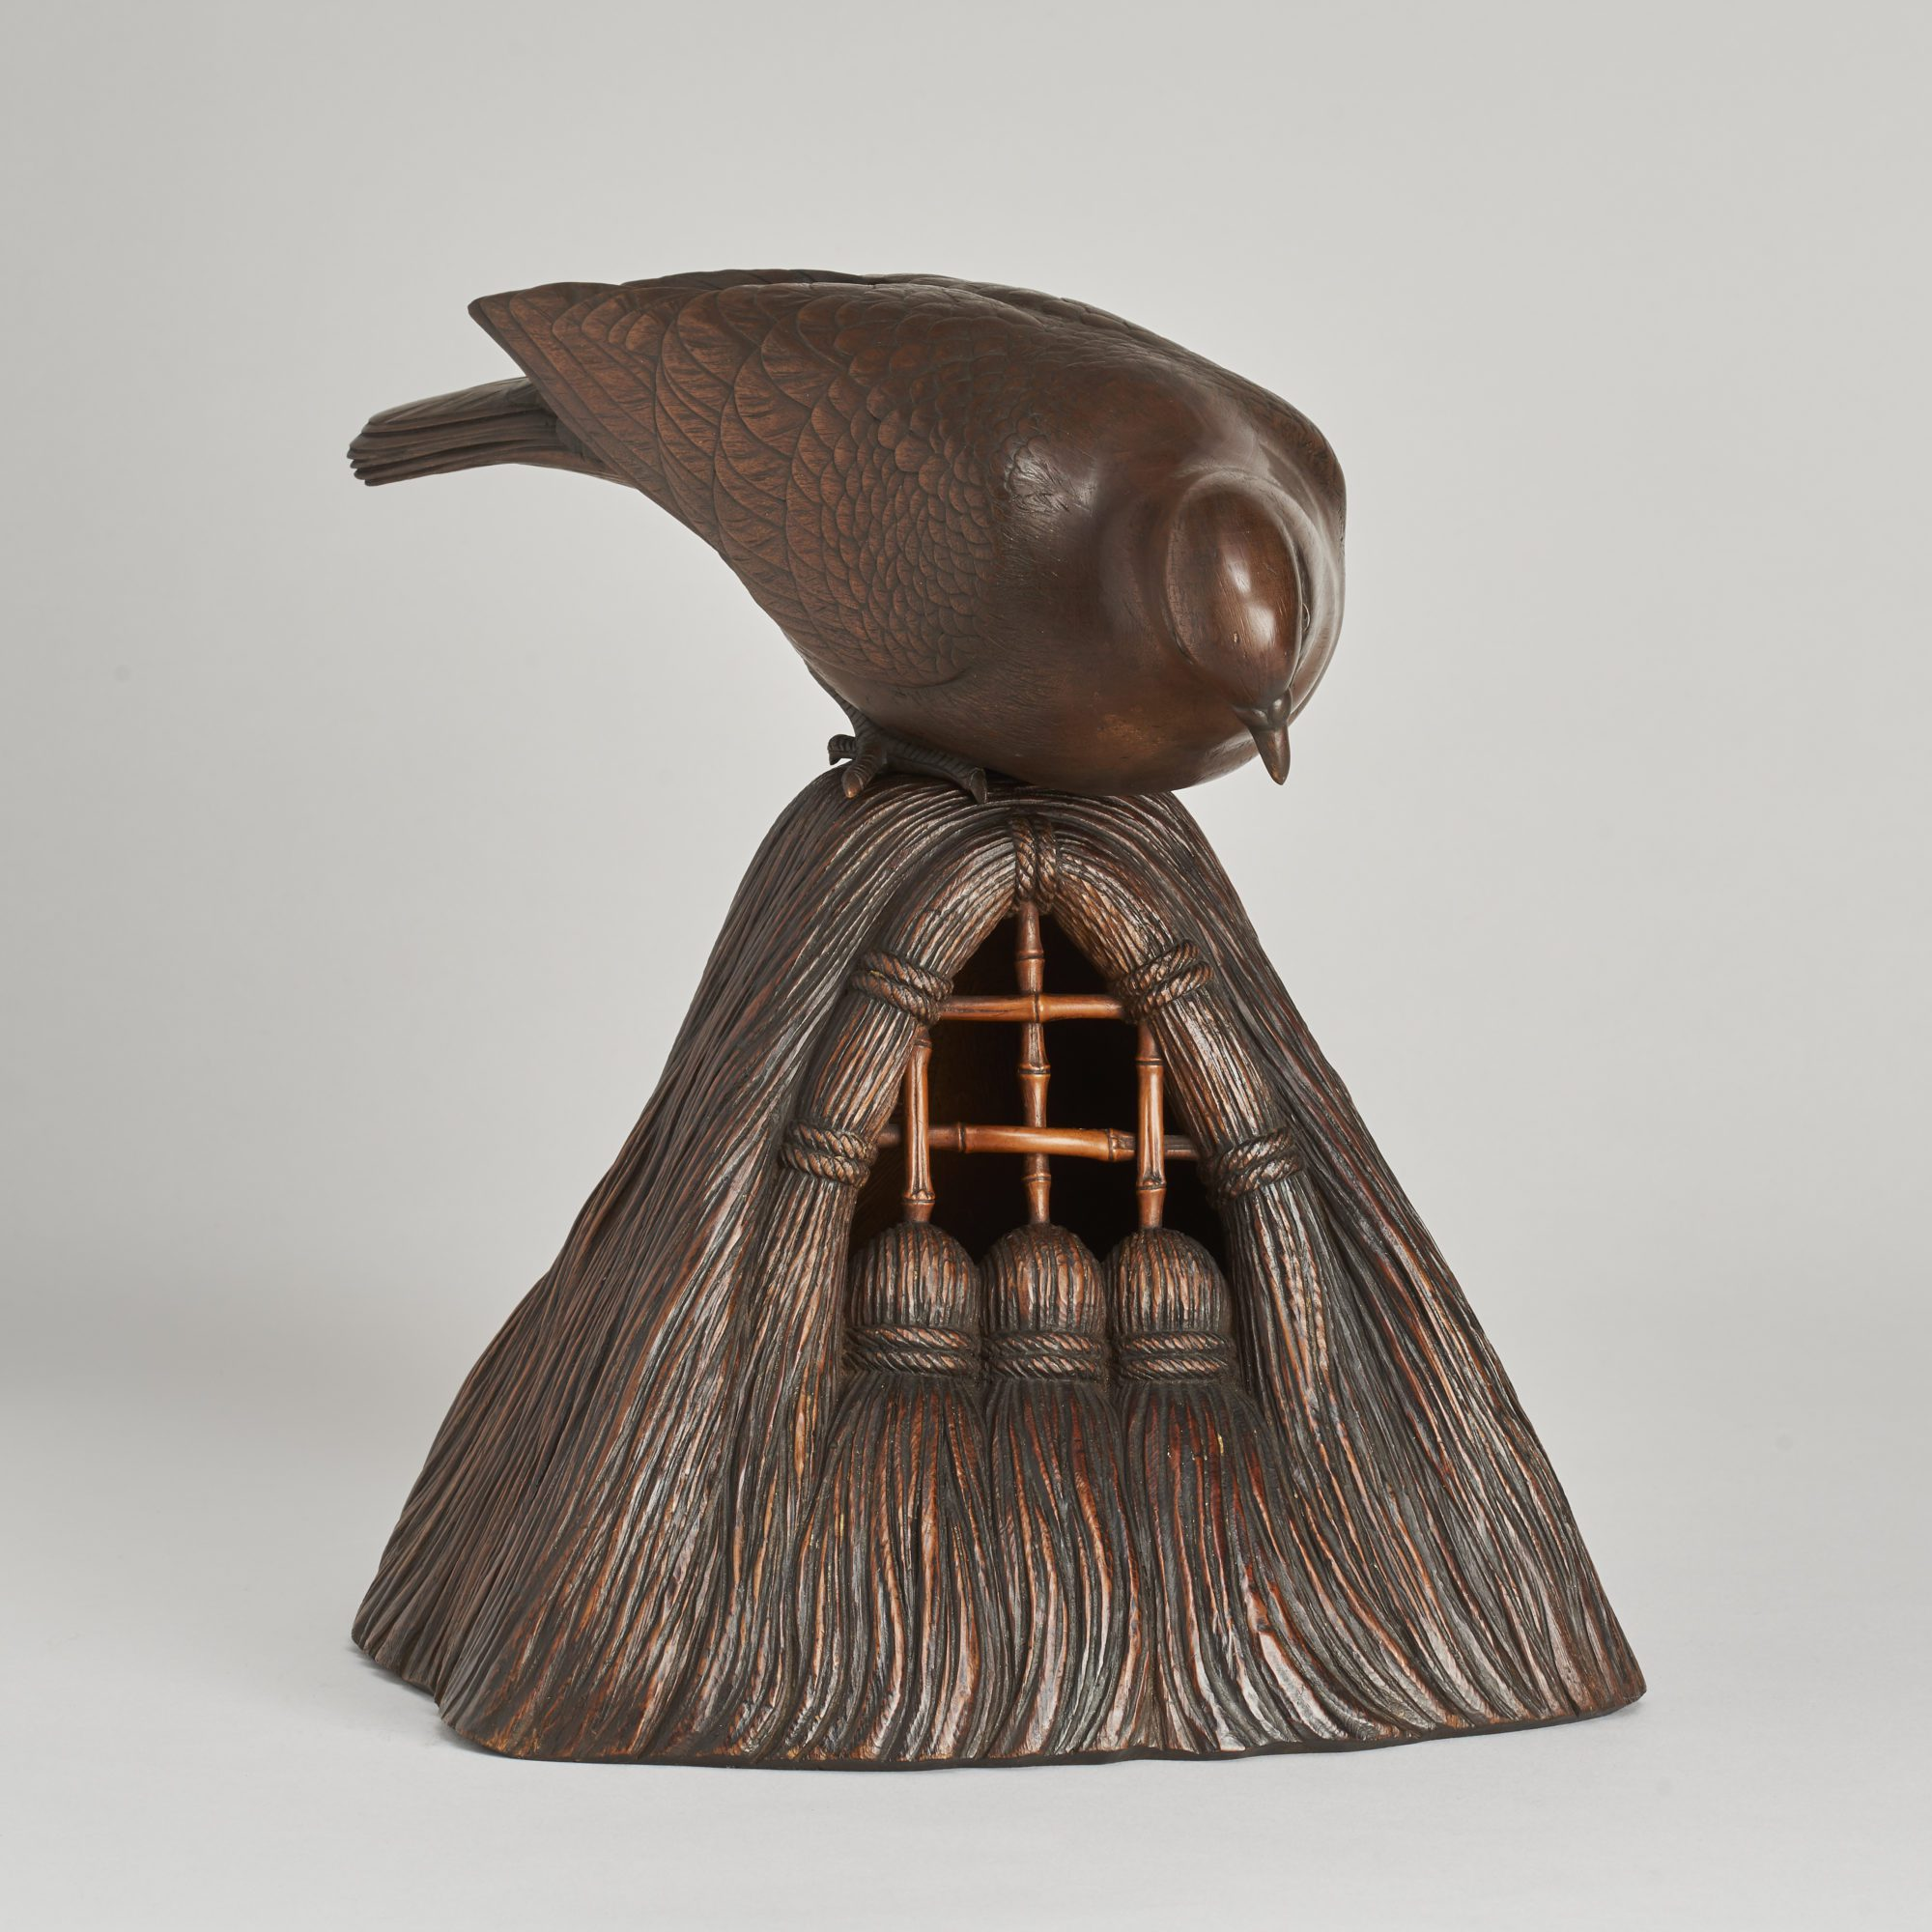 Japanese wood carving   A Japanese Meiji Period carved Wood Okimono of a Dove peering into a grain store